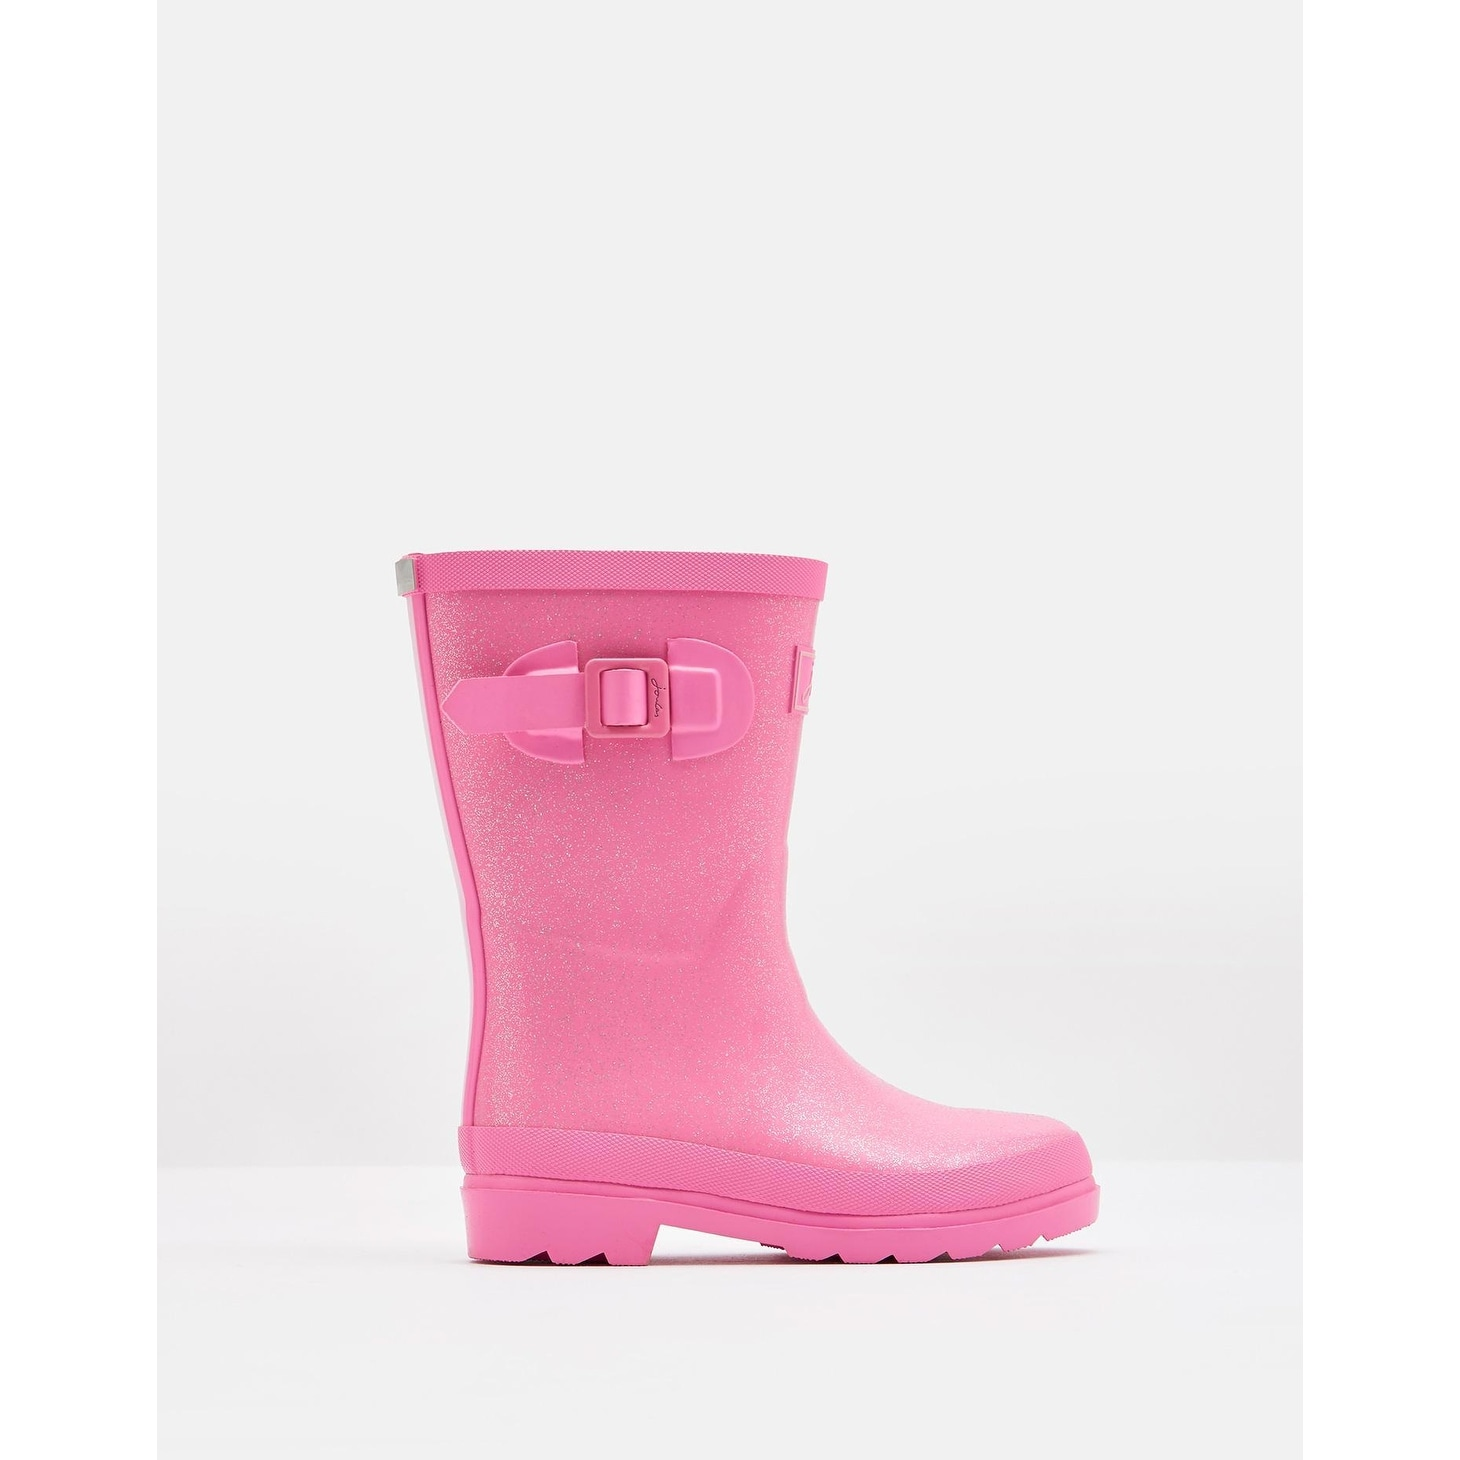 025cc5ca3e749 Shop Kids Joules Girls jnrfieldwlg Mid-Calf Pull On Rain, Pnkgltr, Size 3.0  Youth - 3.0 youth - Free Shipping On Orders Over $45 - Overstock - 22834022